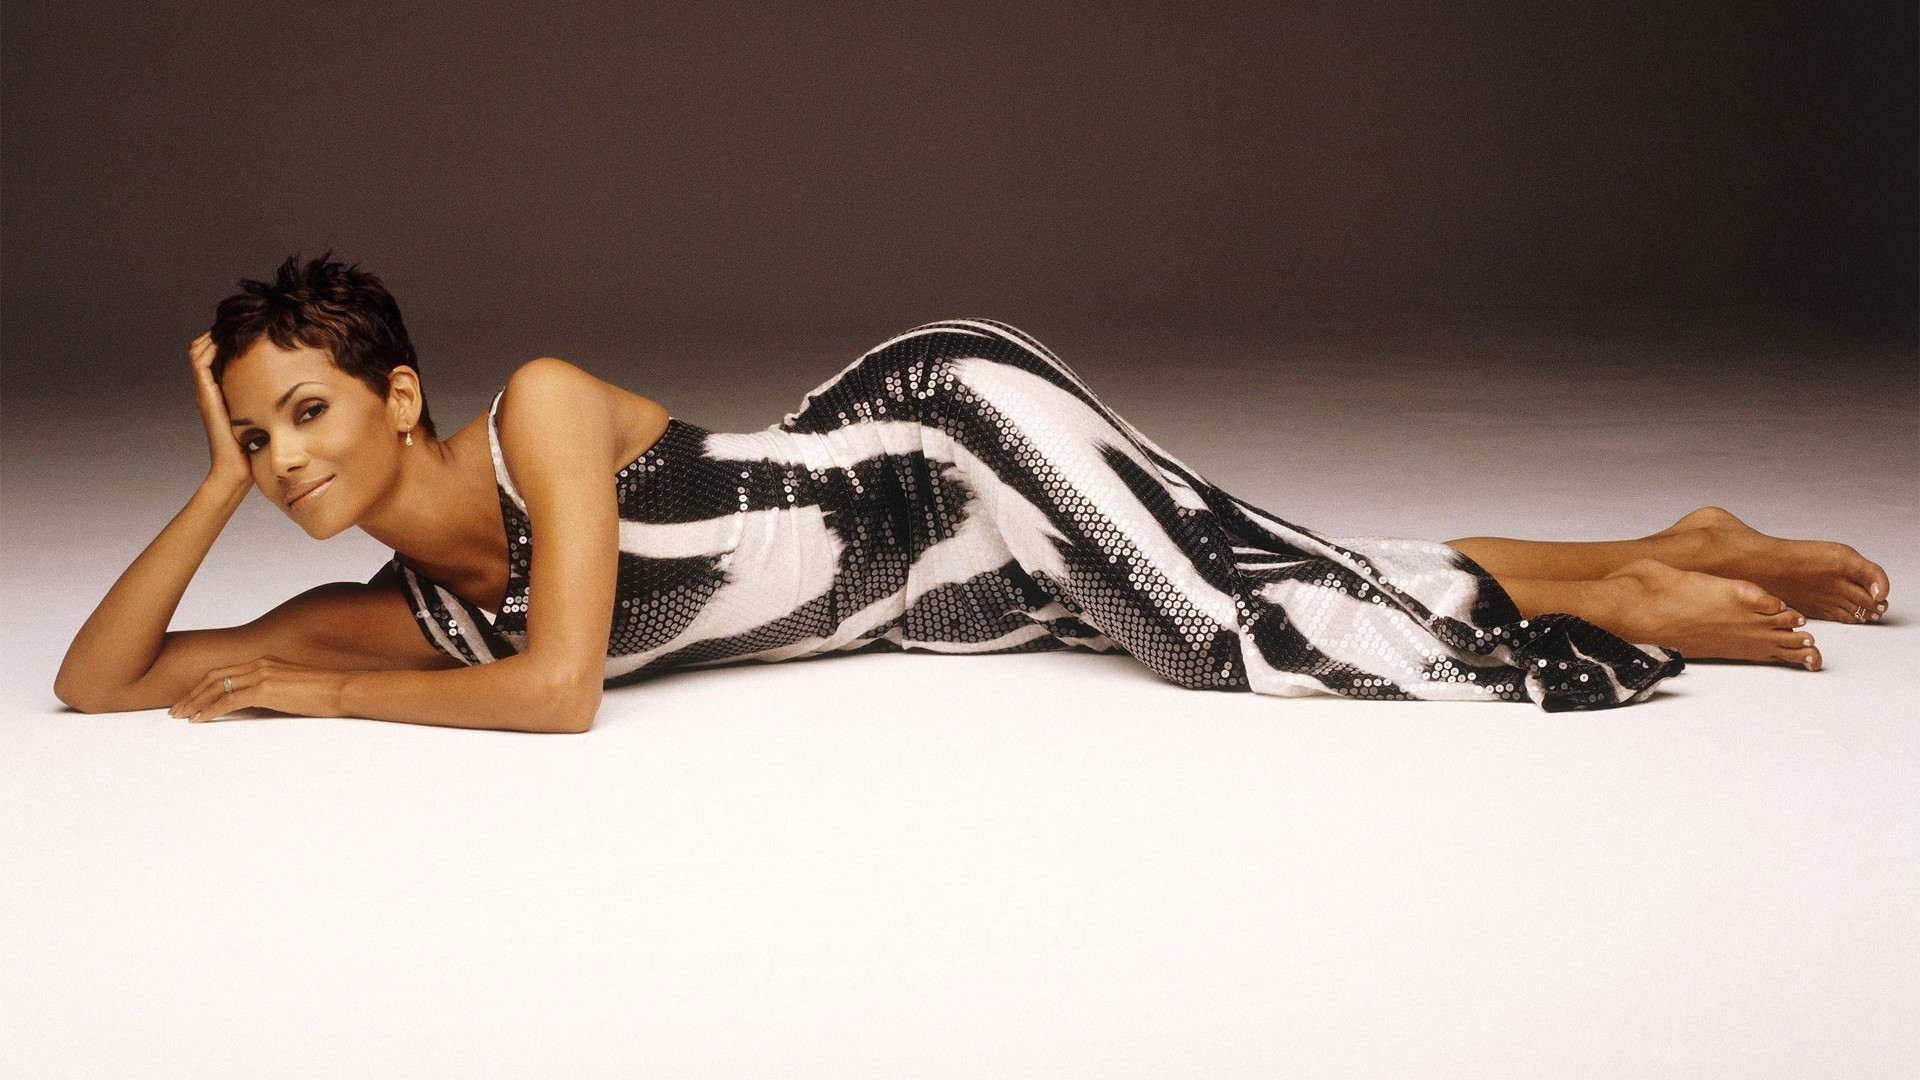 1920x1080 - Halle Berry Wallpapers 19